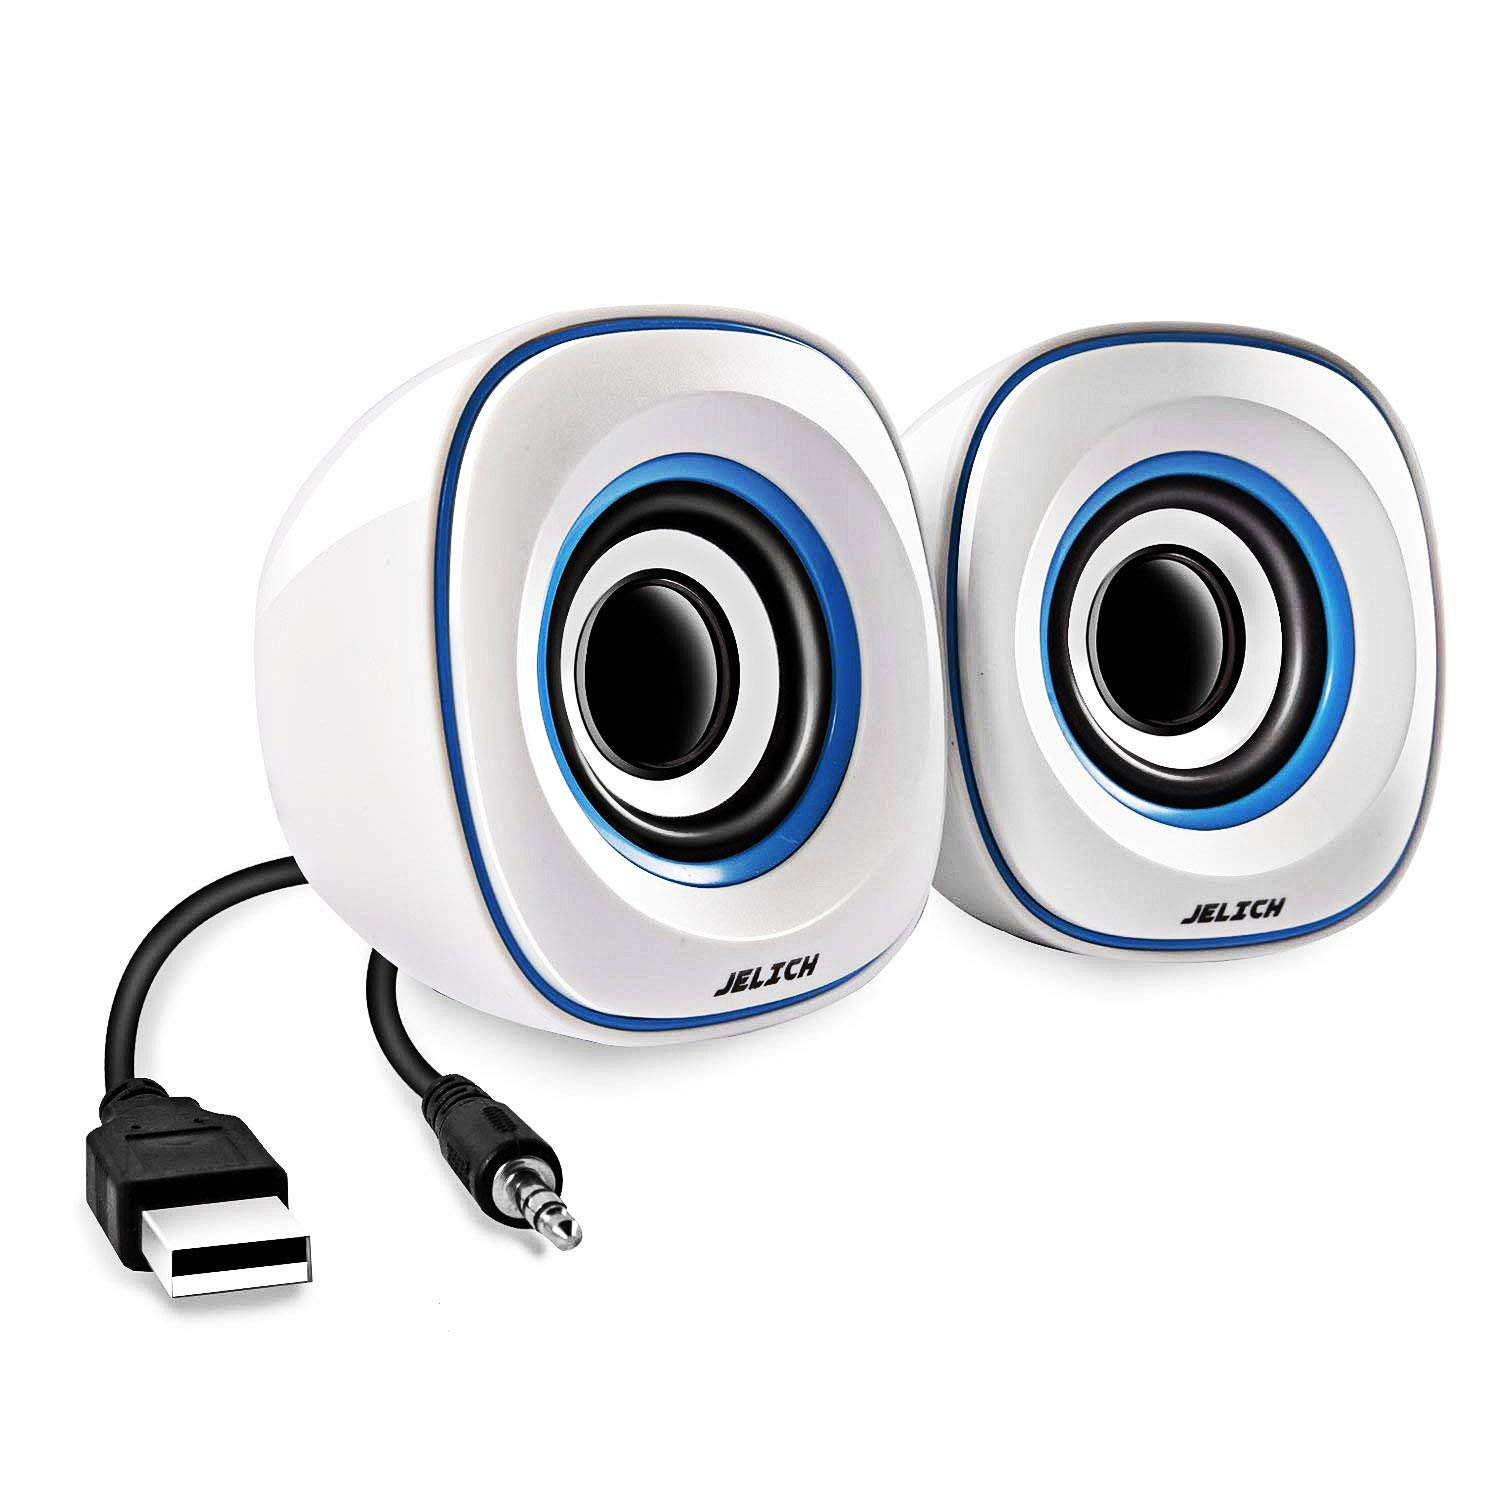 JELICH Mini USB Computer Speakers - Wired USB Powered Multimedia Small Speakers with light music needs for PC /Desktop /Laptops /Smart Phone